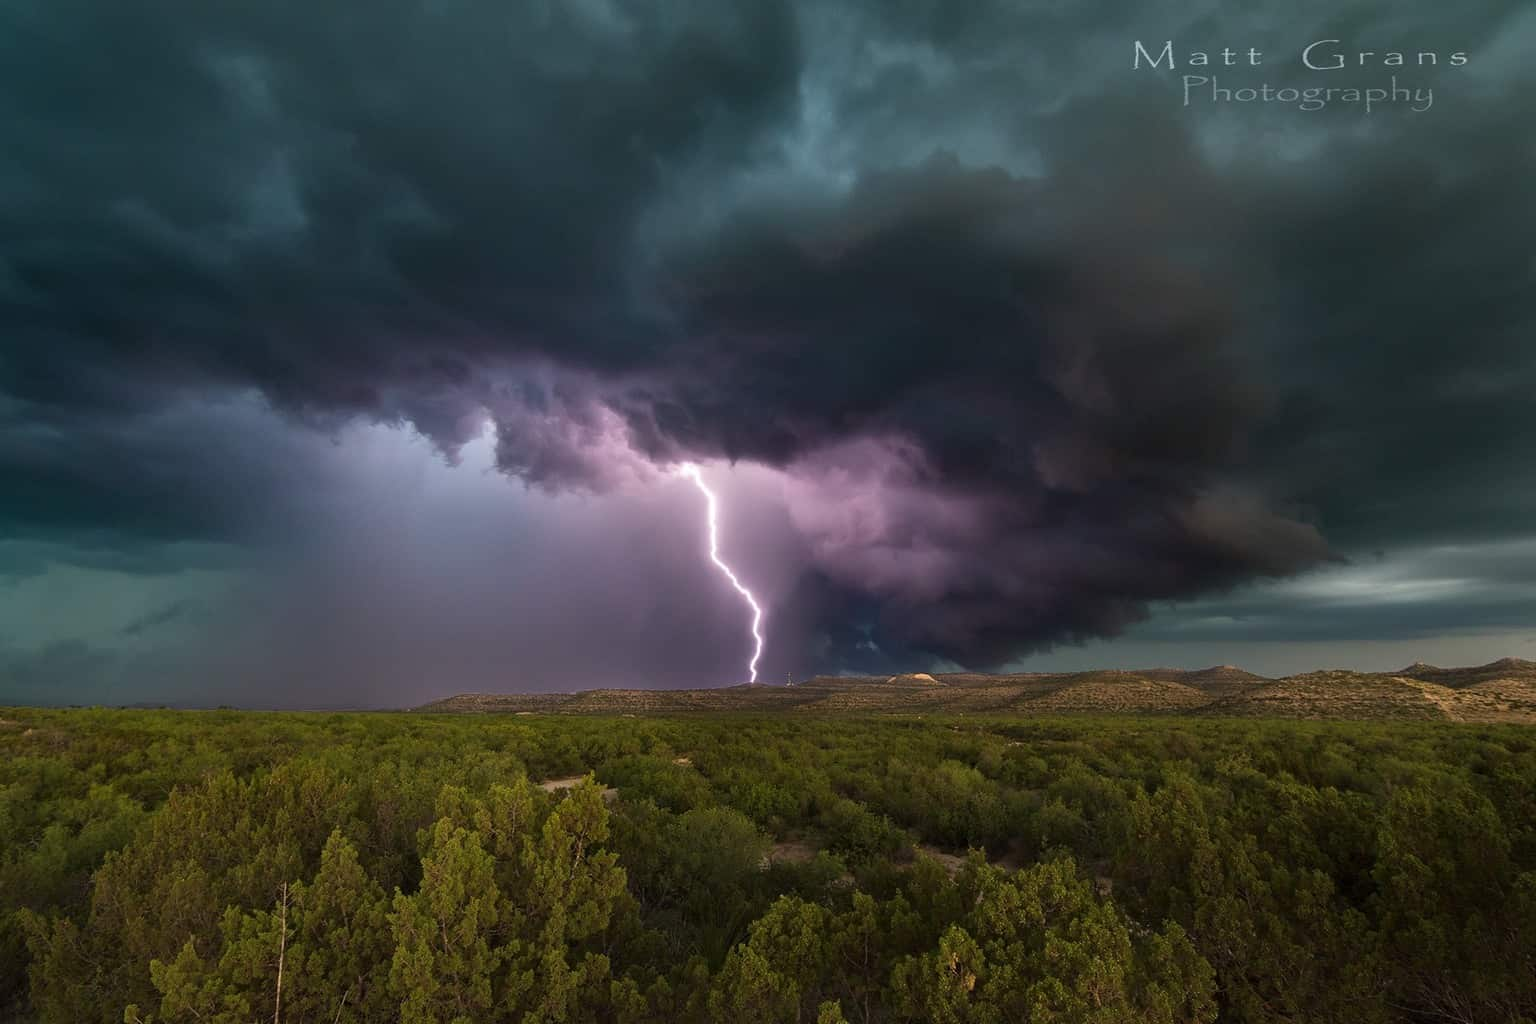 This was a handheld shot. No lightning trigger or long exposure tricks to get the bolt that I was able to catch. Pretty lucky shot. — at Sheffield Freaking Texas.